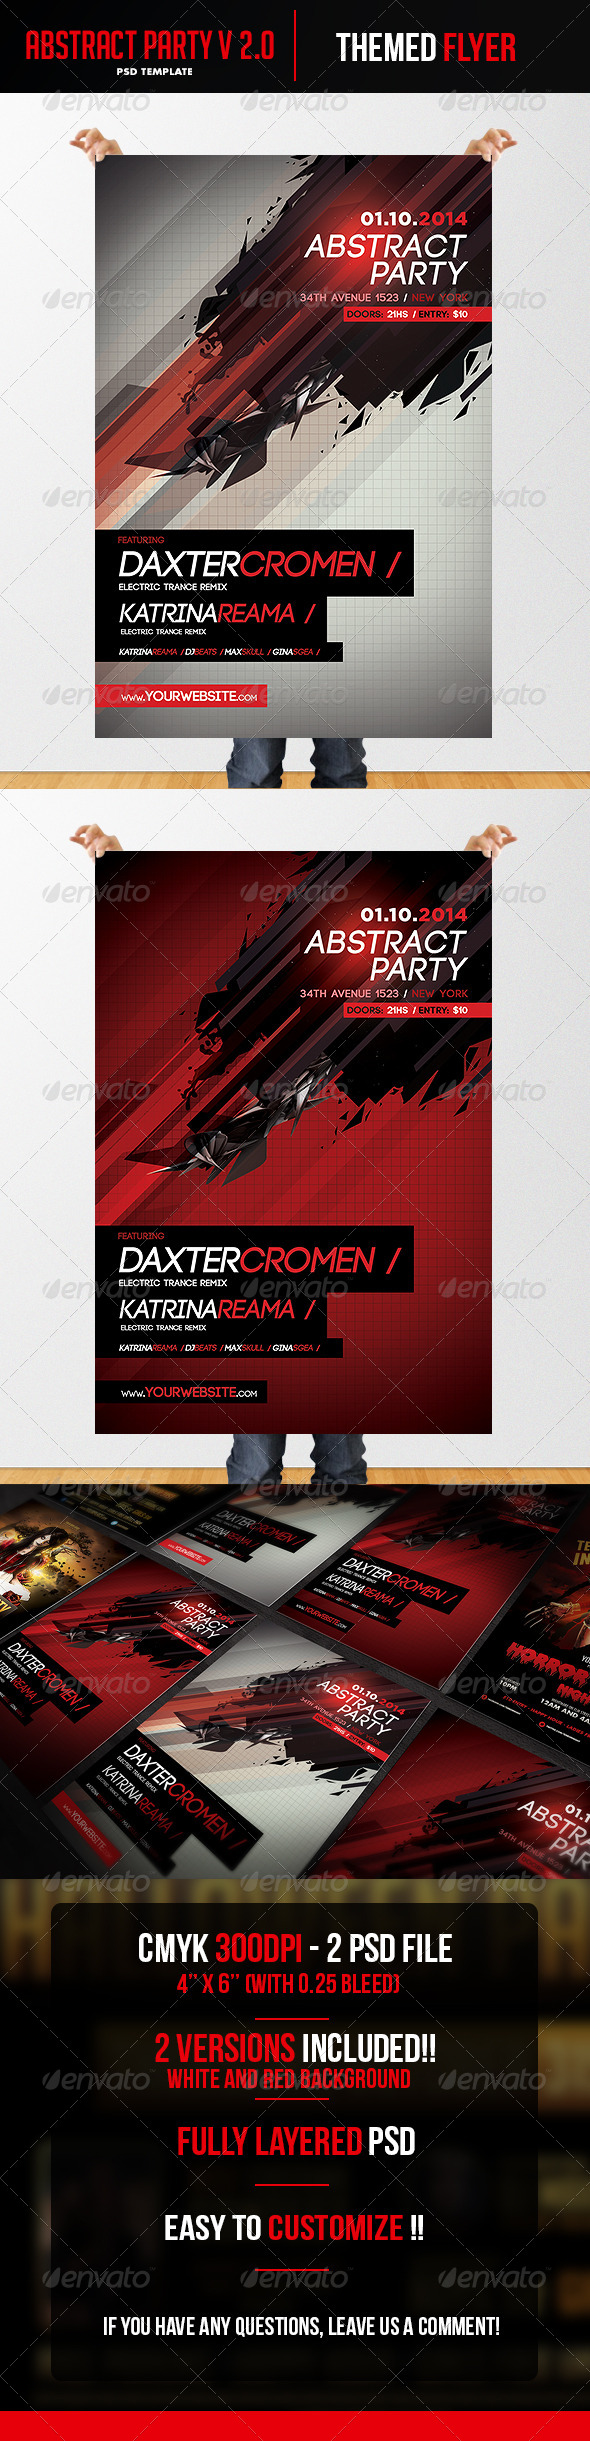 Abstract V2 Flyer Template - Clubs & Parties Events